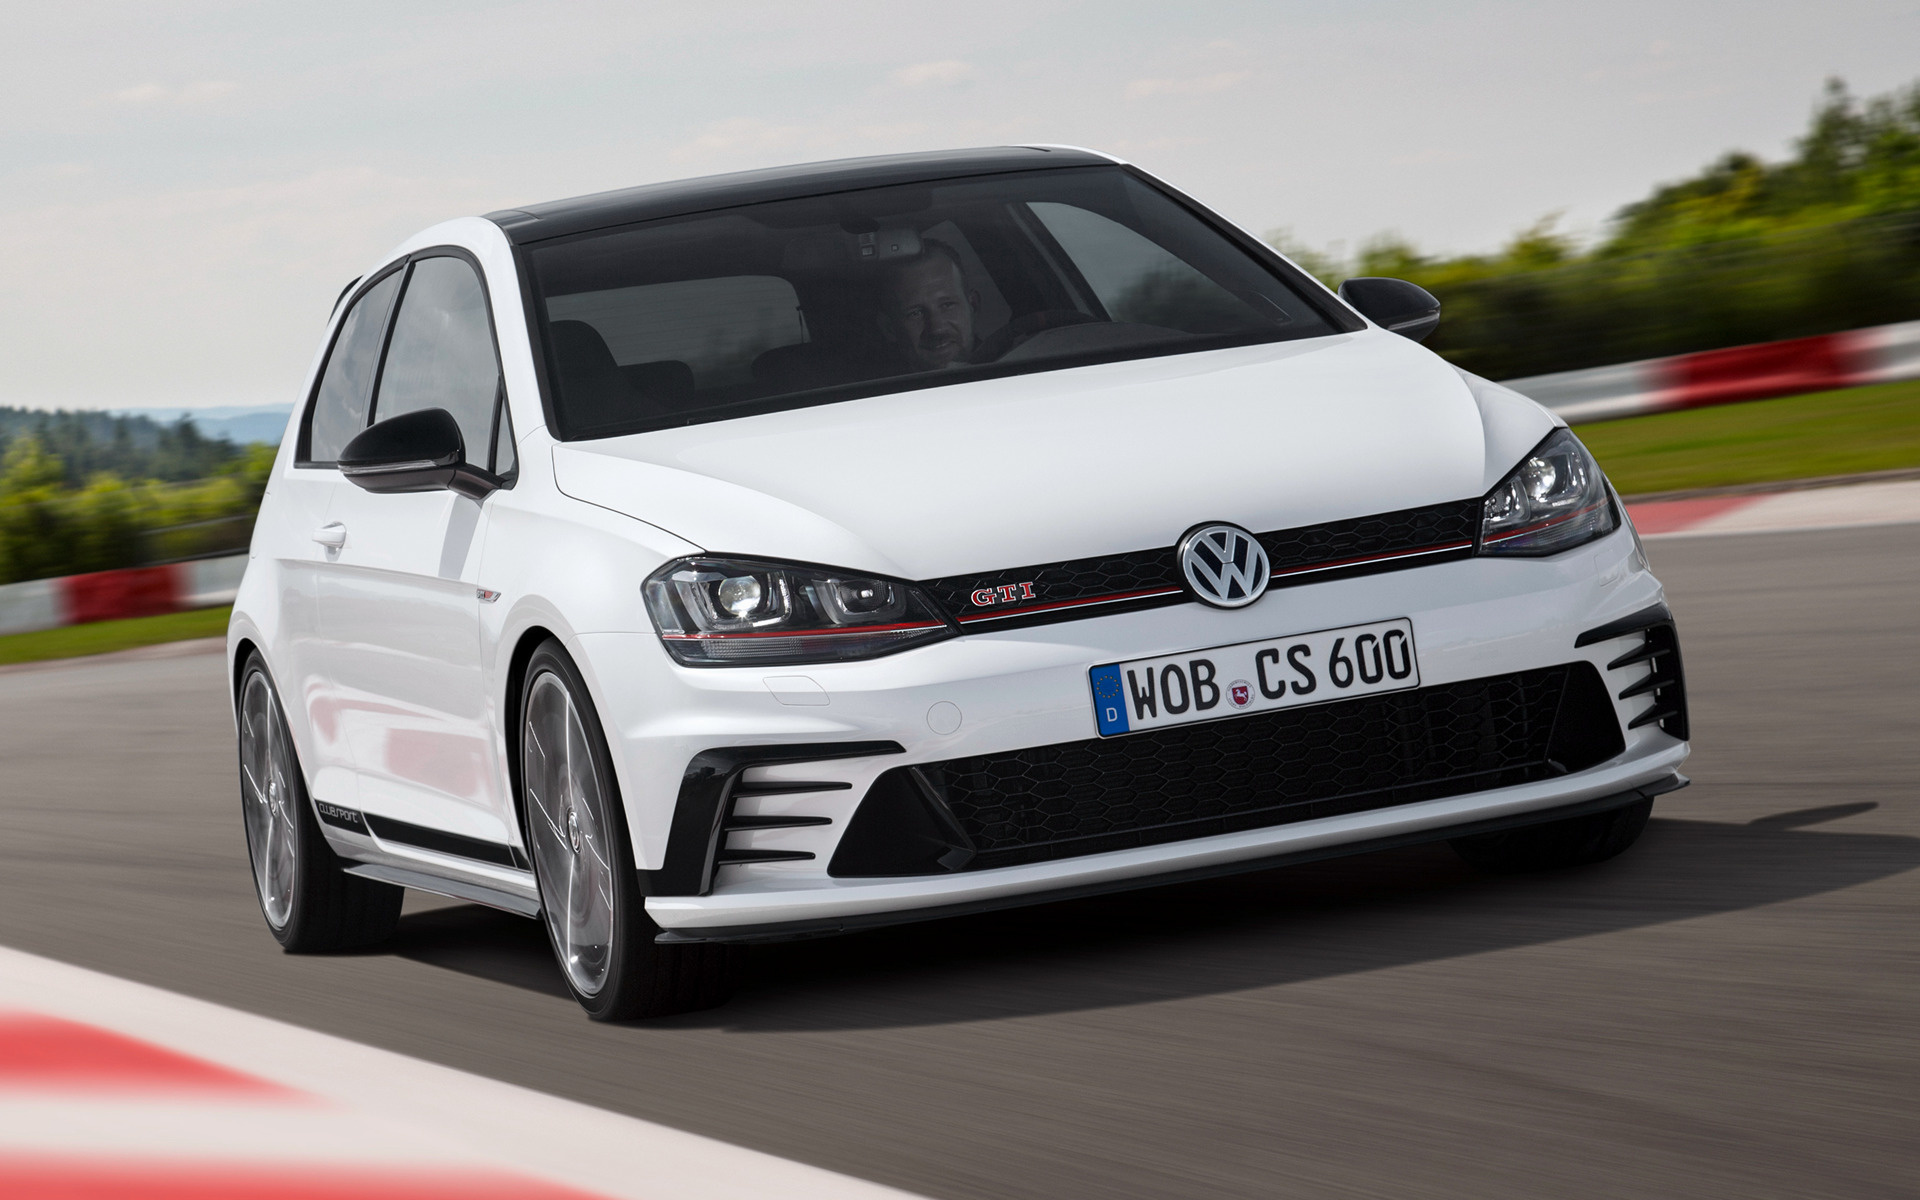 Volkswagen Golf GTI Clubsport 3-door (2015) Wallpapers and HD Images - Car Pixel